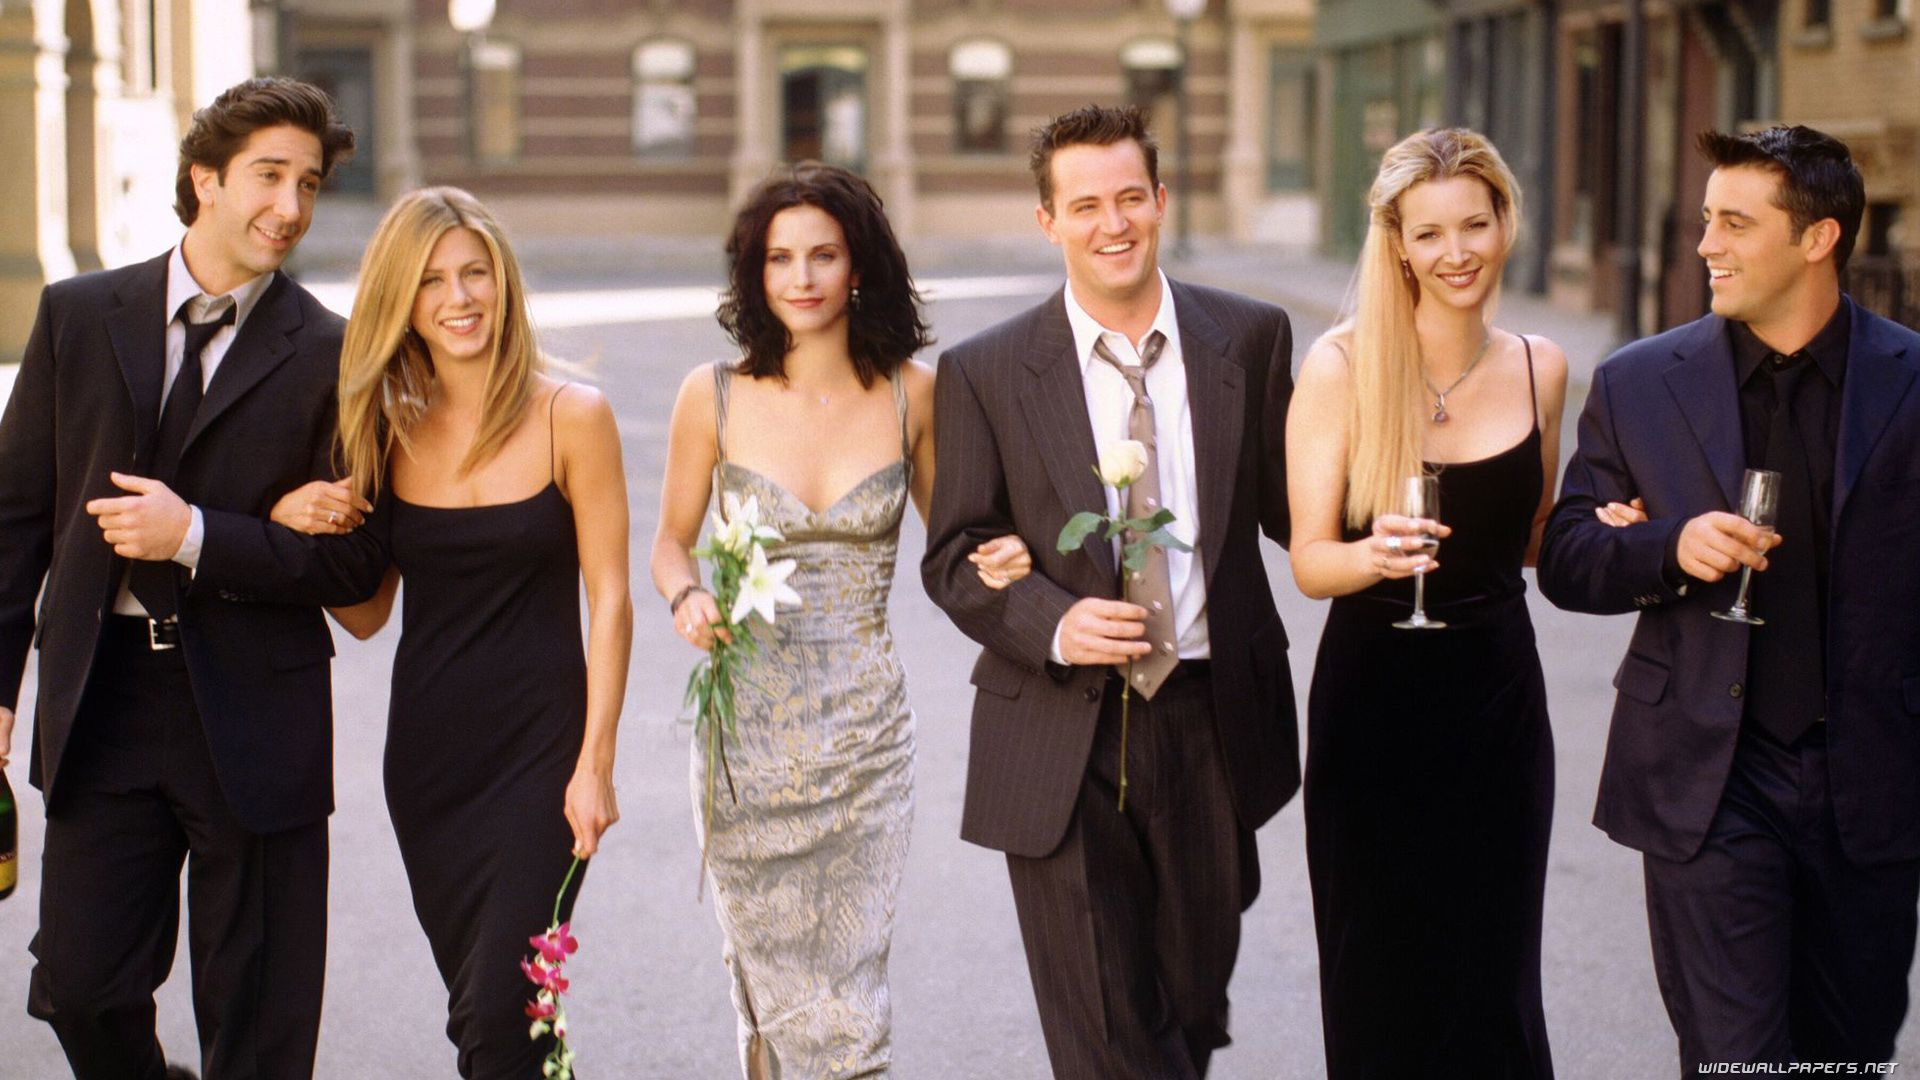 Friends Tv Show Wallpapers Group (49+)